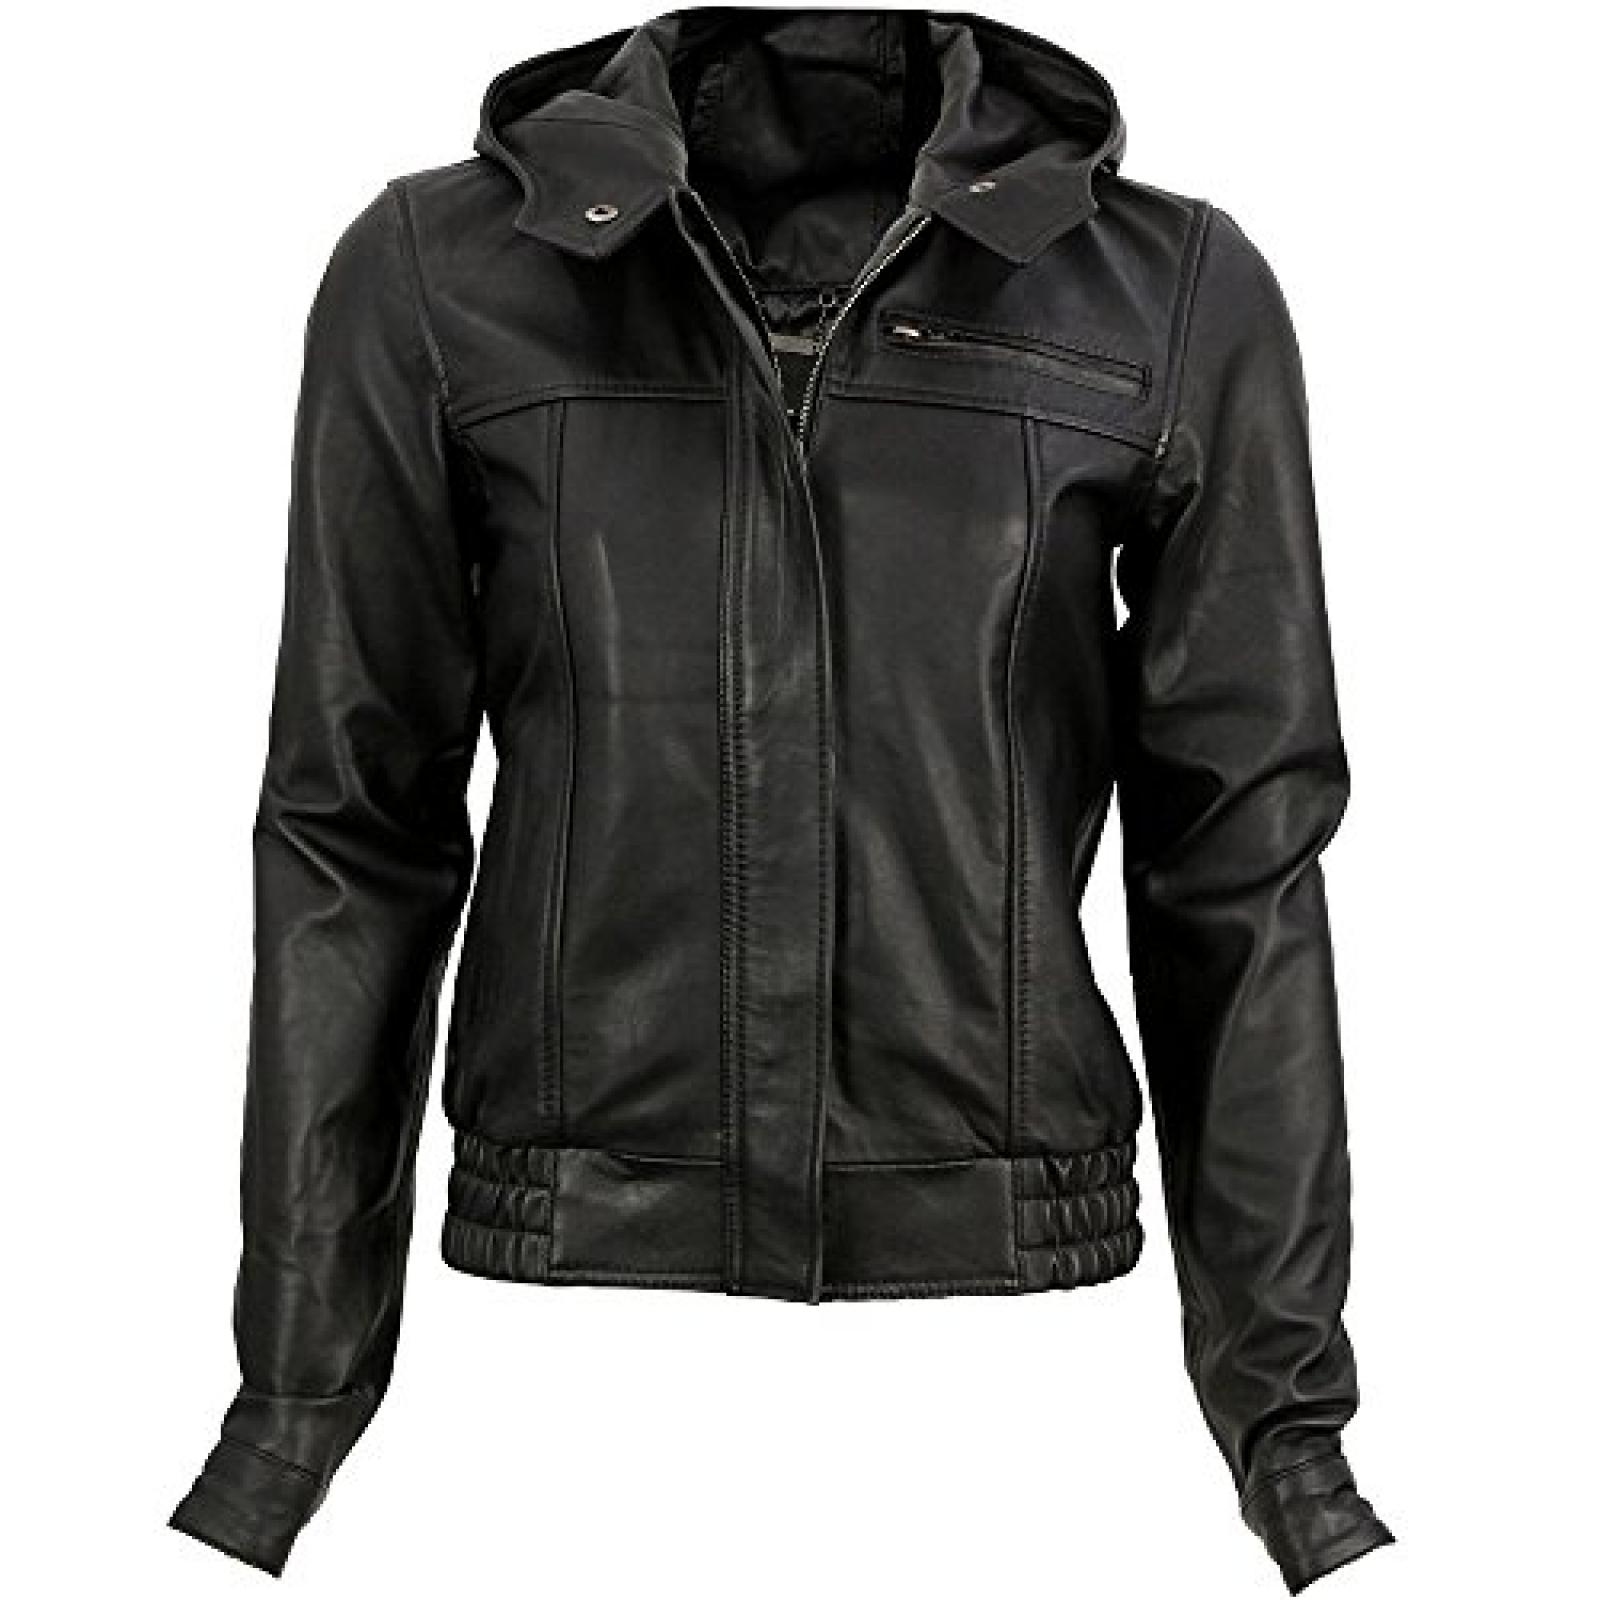 VIPARO Black Urban Hooded Bomber Leather Jacket - Simona